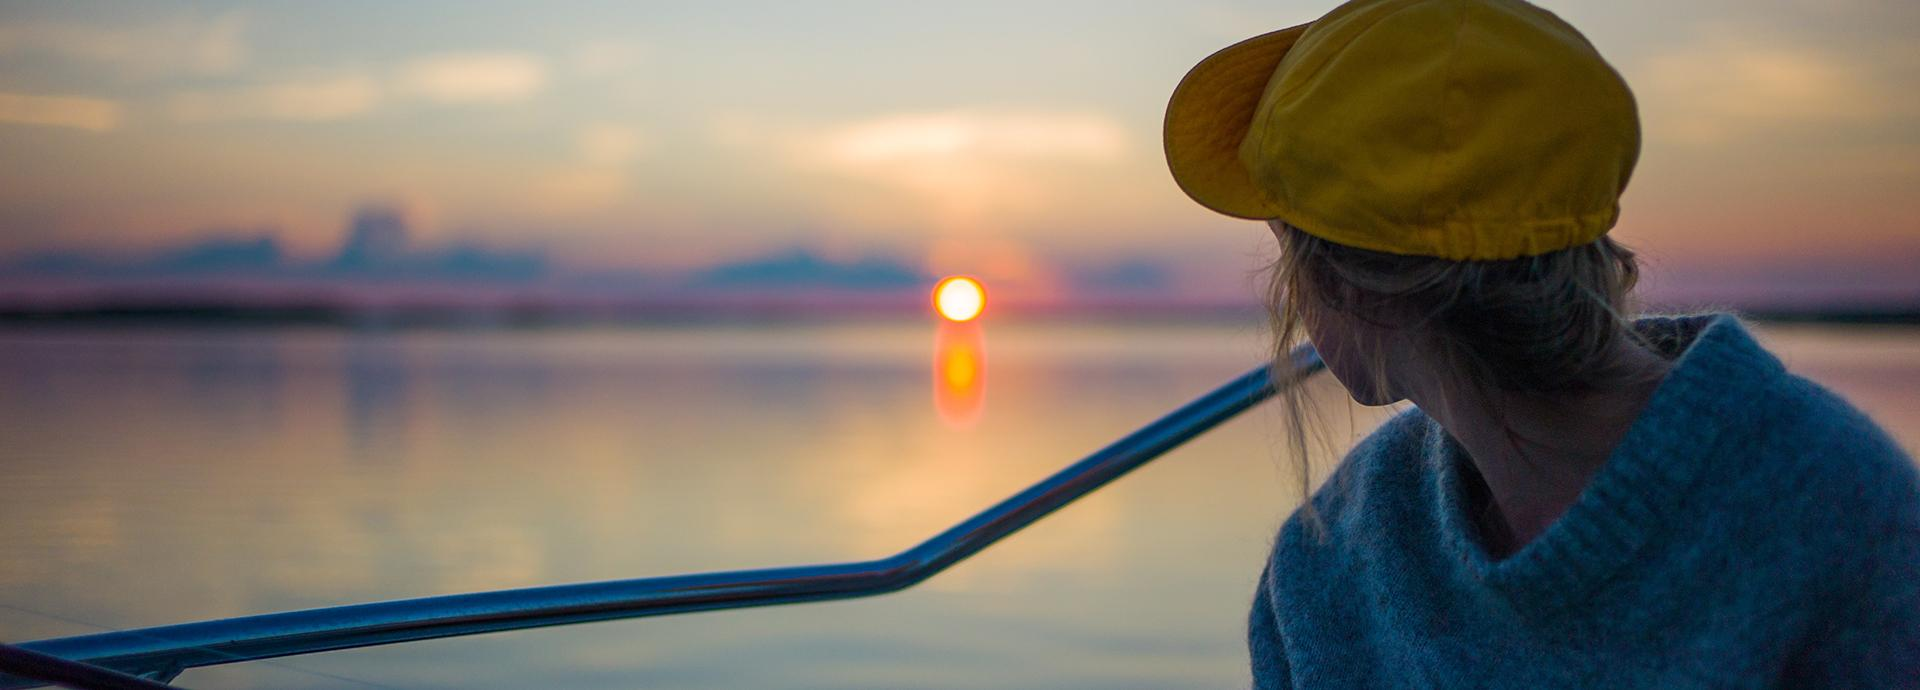 A person wearing a yellow cap sitting a boat looking at a sun setting behind a lake